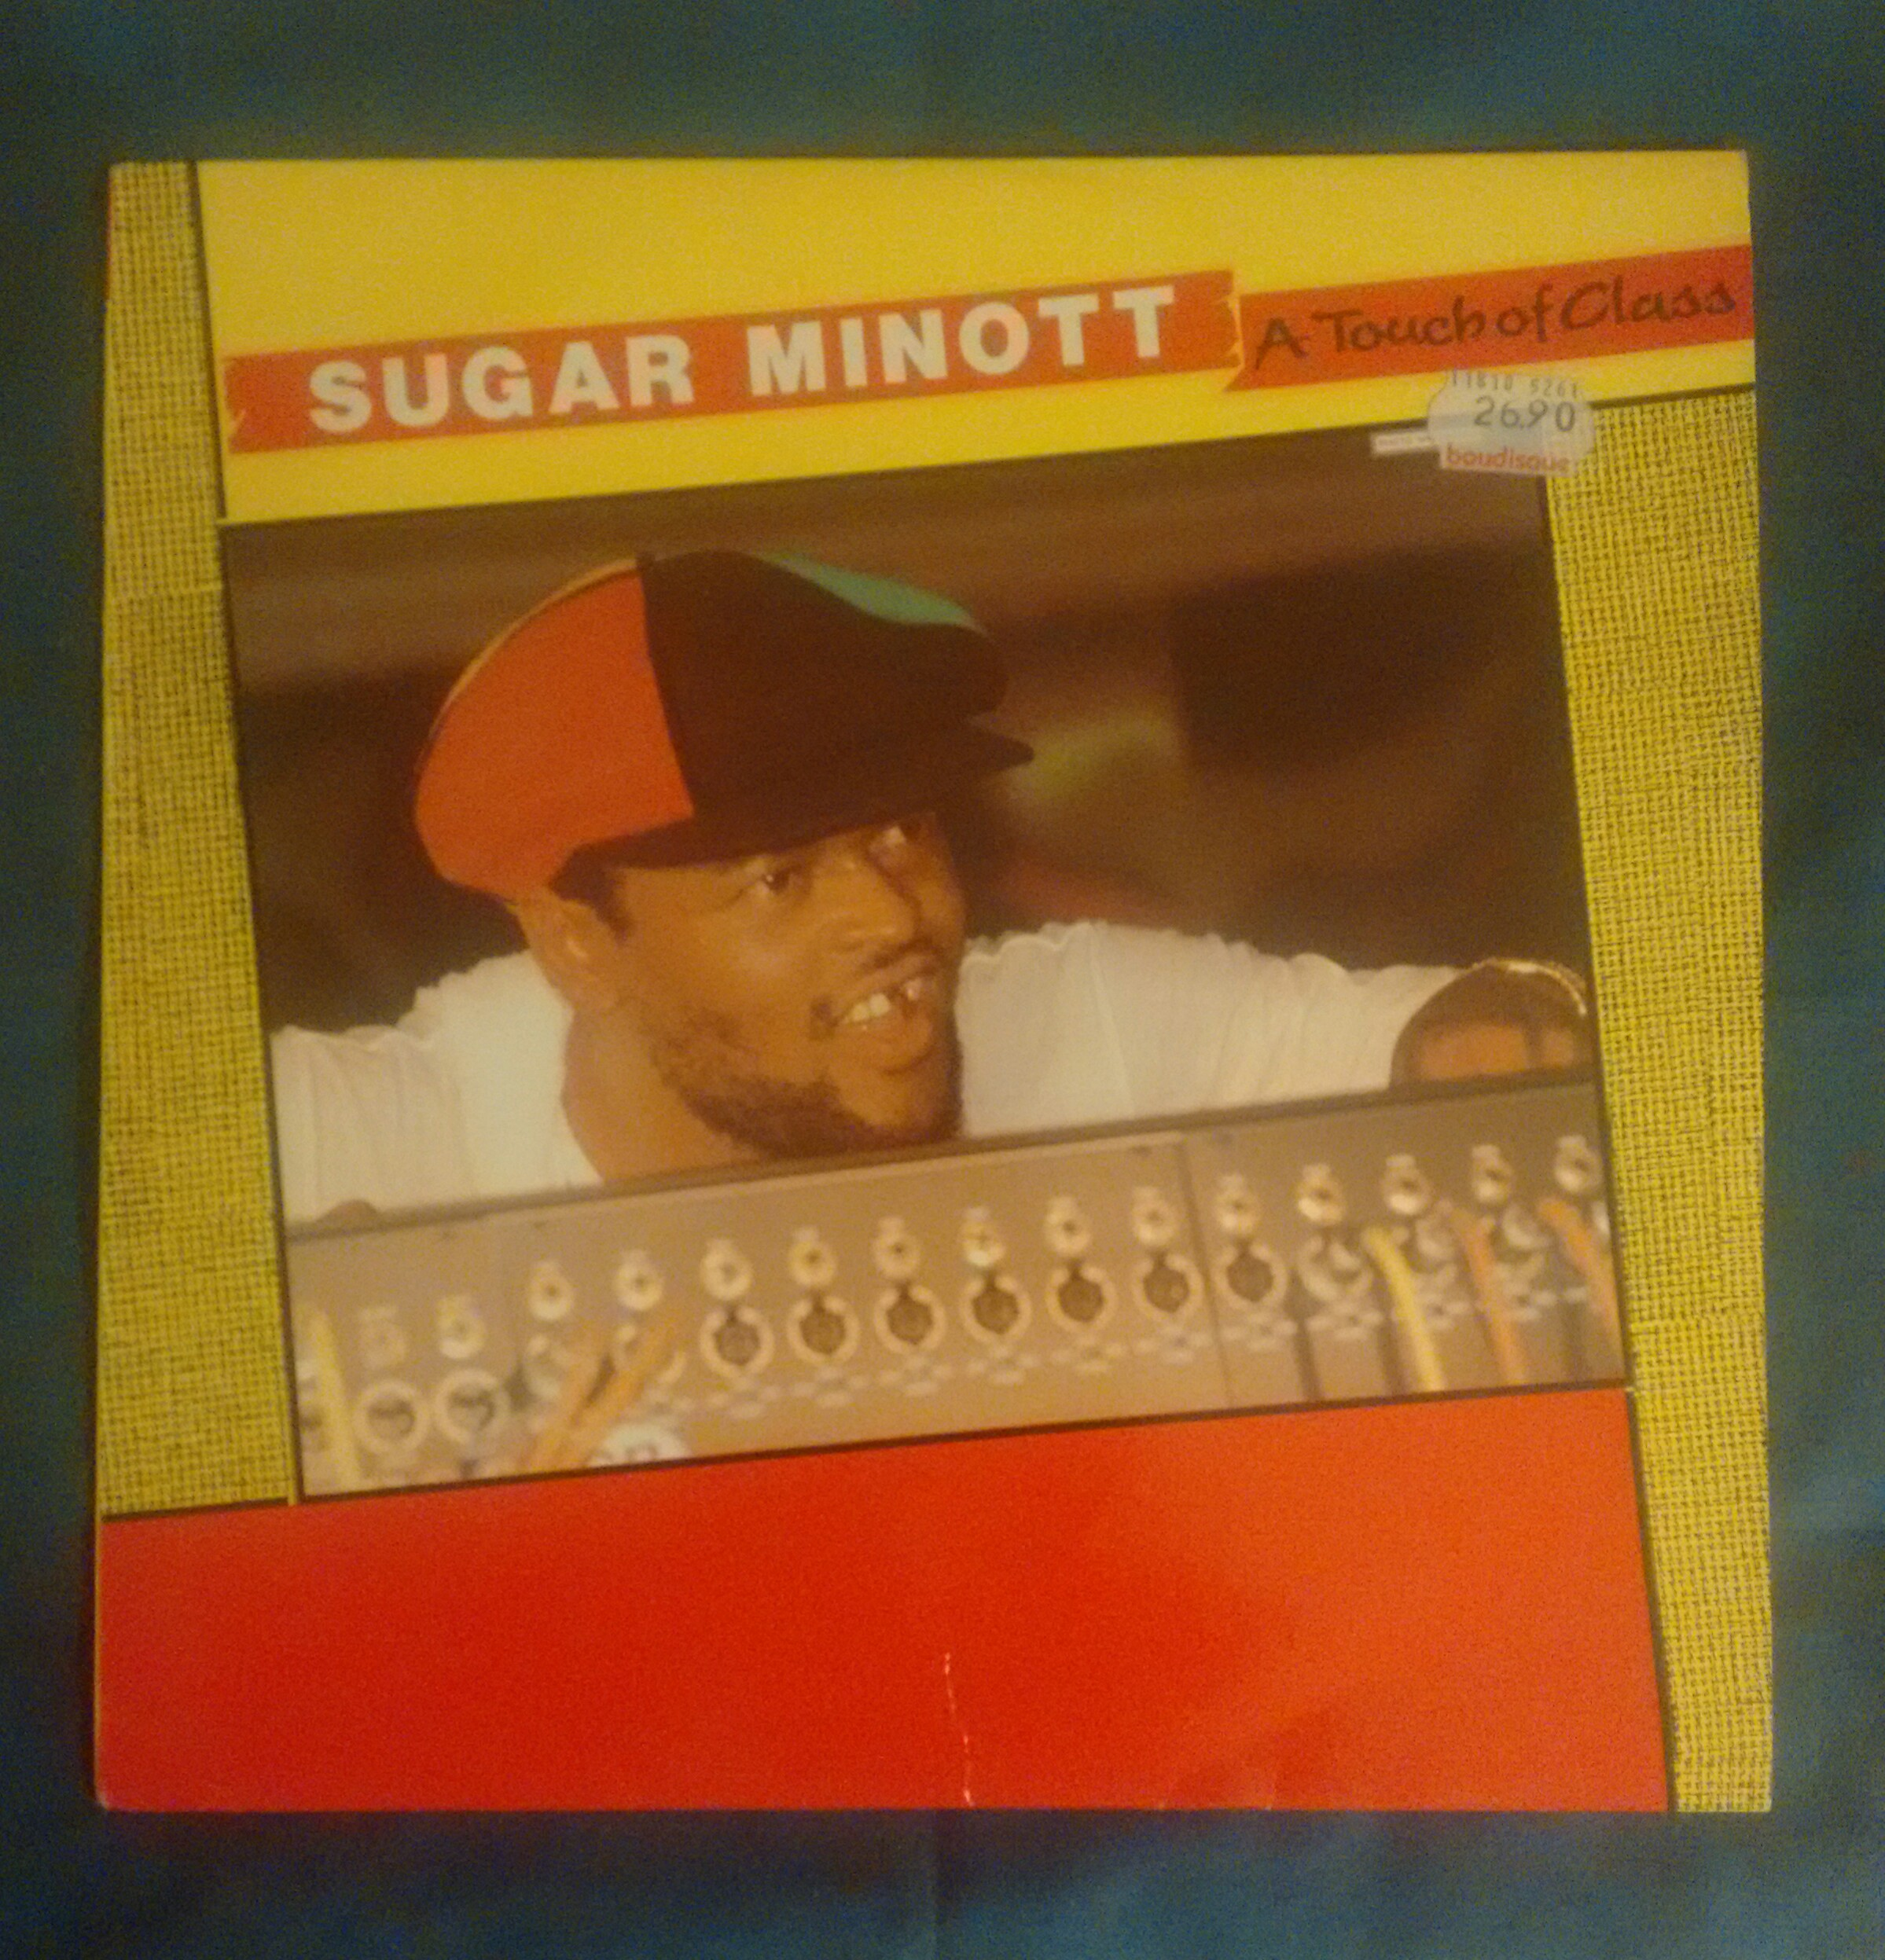 sugar minnot